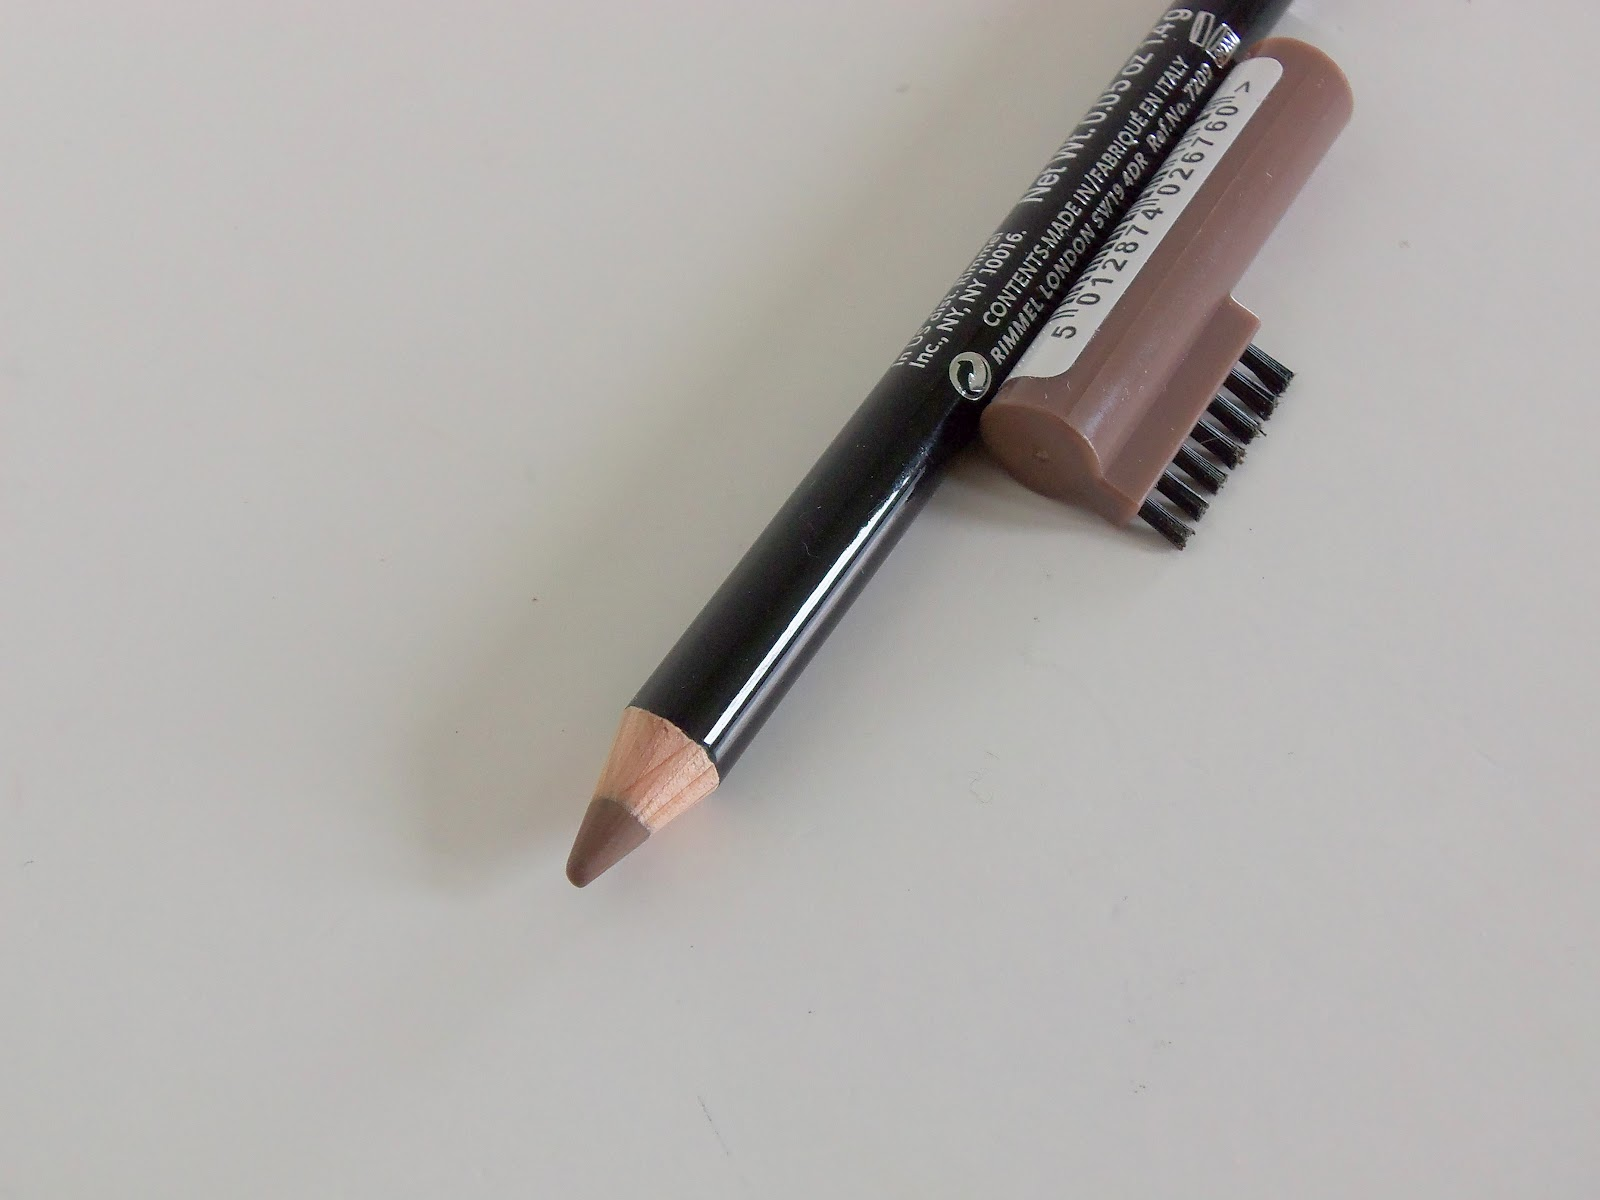 Rimmel Professional Eyebrow Pencil In Hazel Review Swatch A